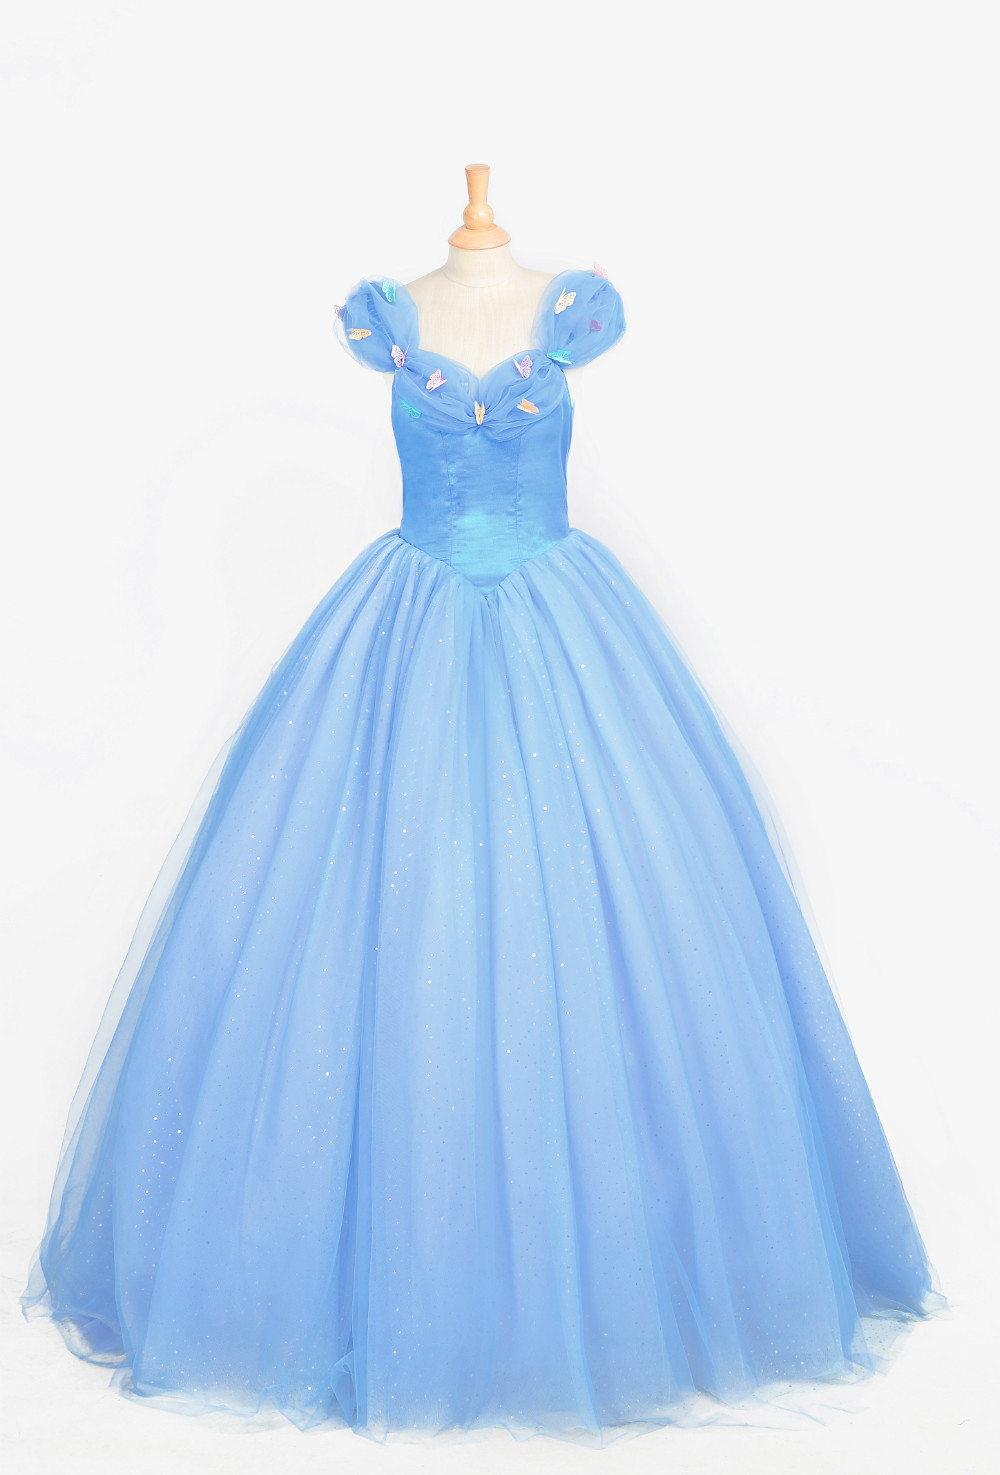 disneys limited edition costume line snow white belle rapunzel ariel cinderella elsa anna aurora sleeping beauty cinderella wedding dress costume BELLE